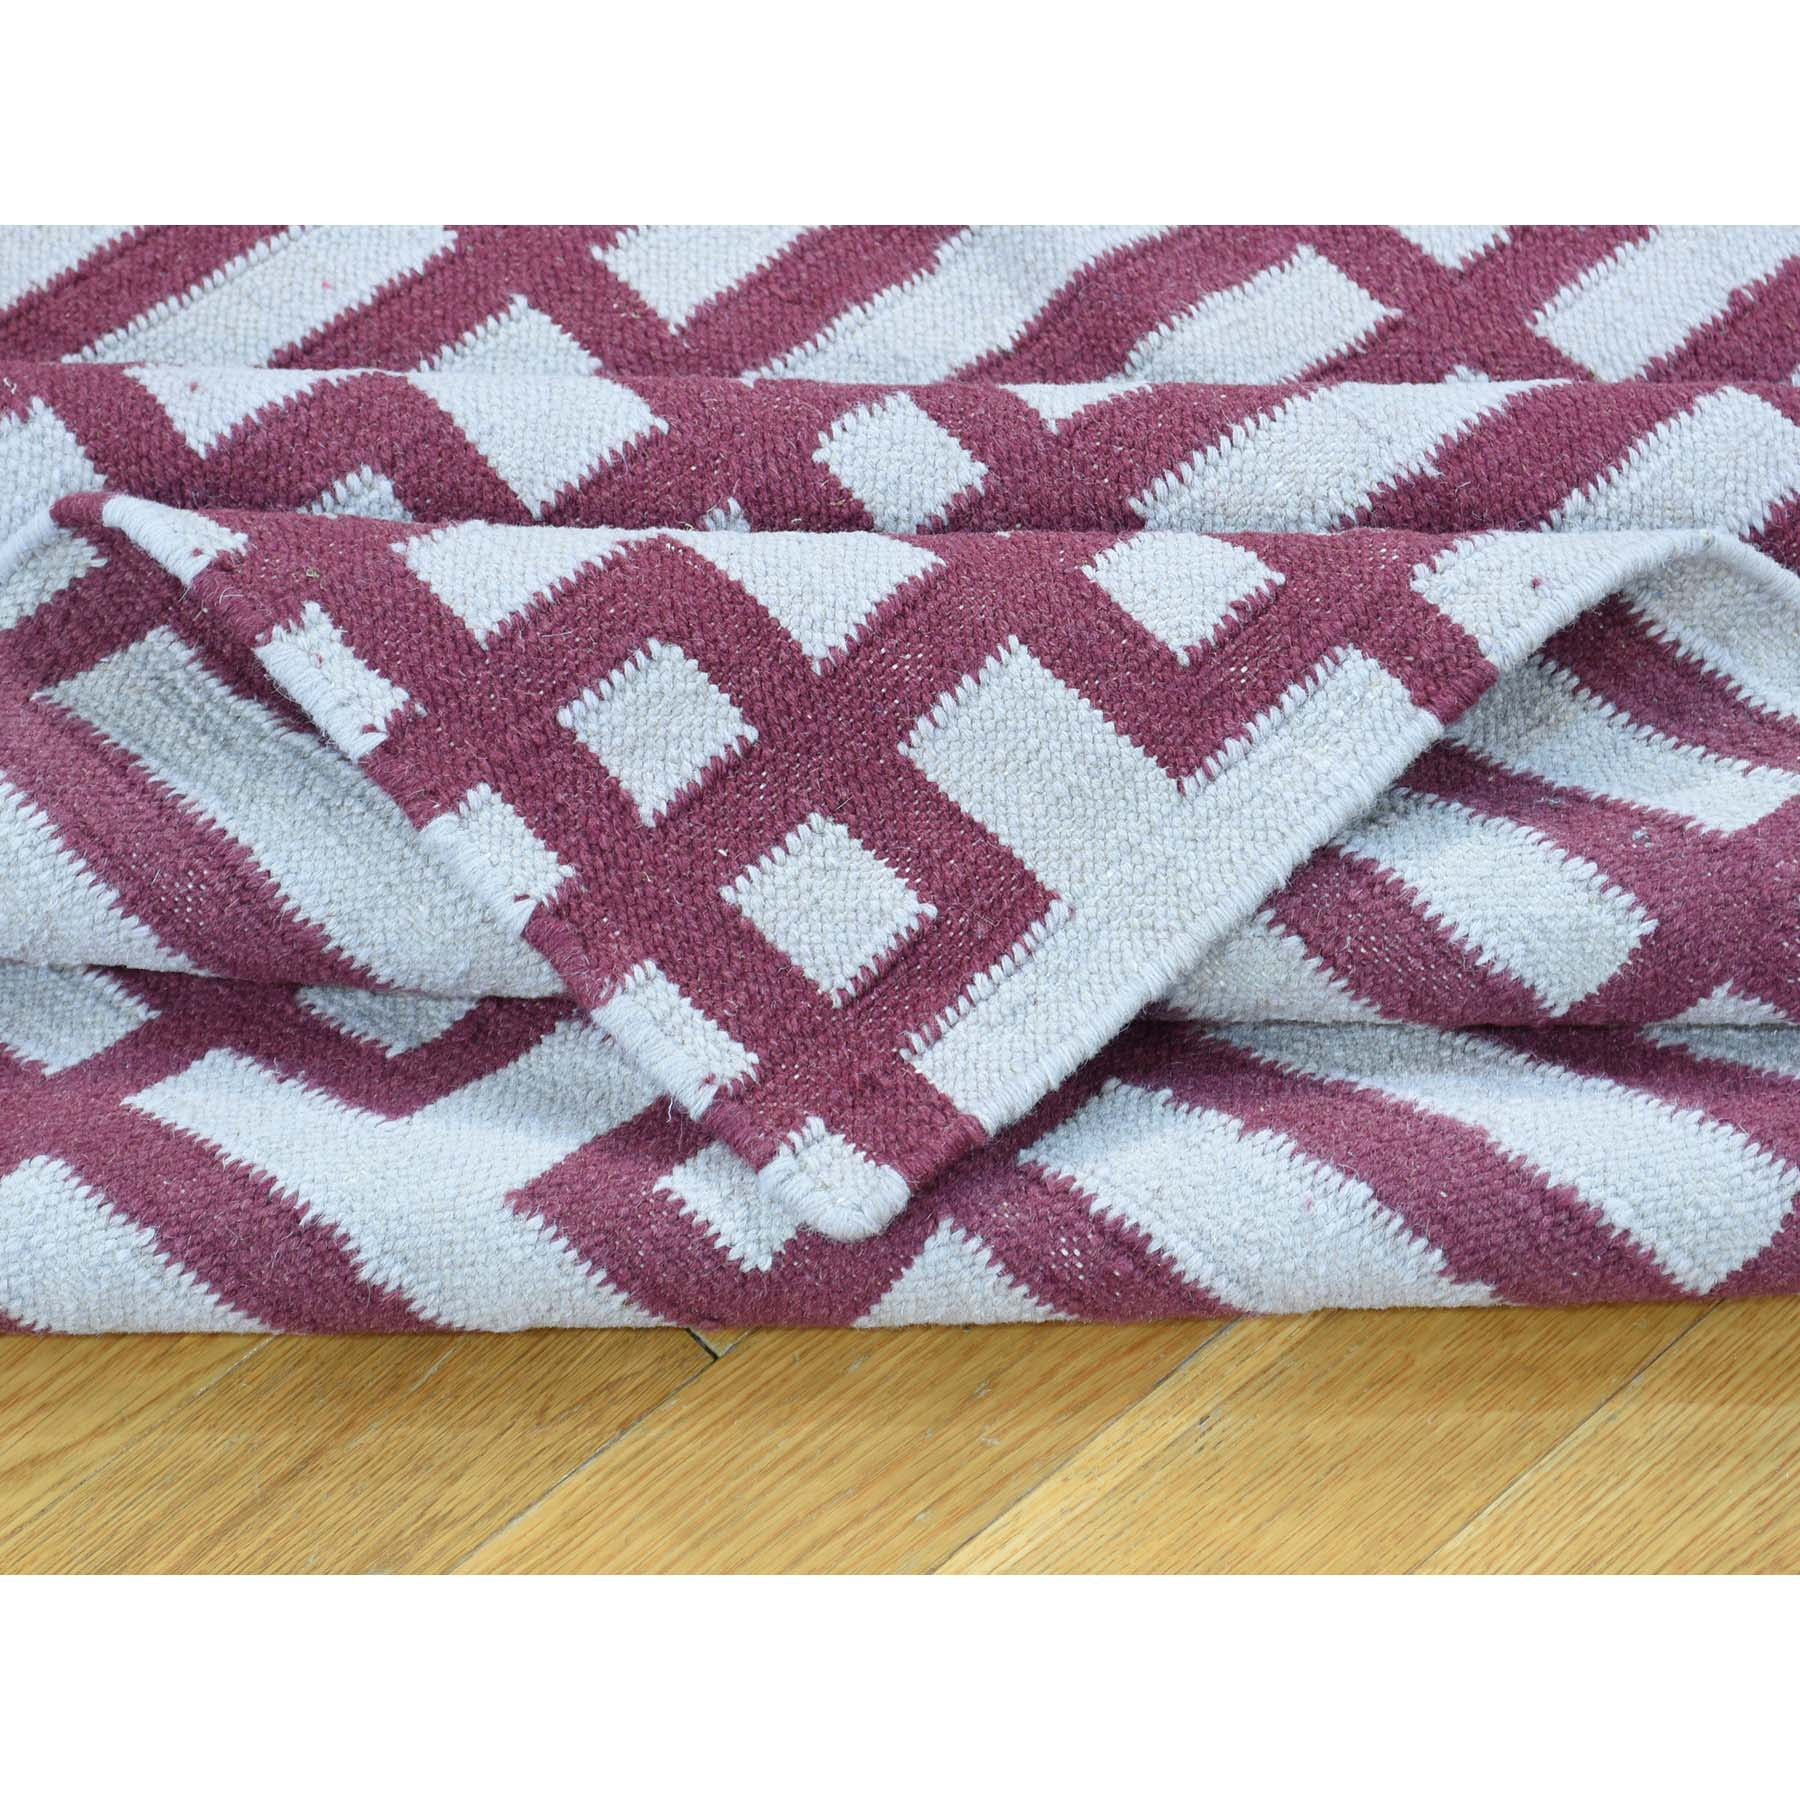 "Handmade Flat Weave Rectangle Rug > Design# SH32083 > Size: 4'-4"" x 6'-0"" [ONLINE ONLY]"